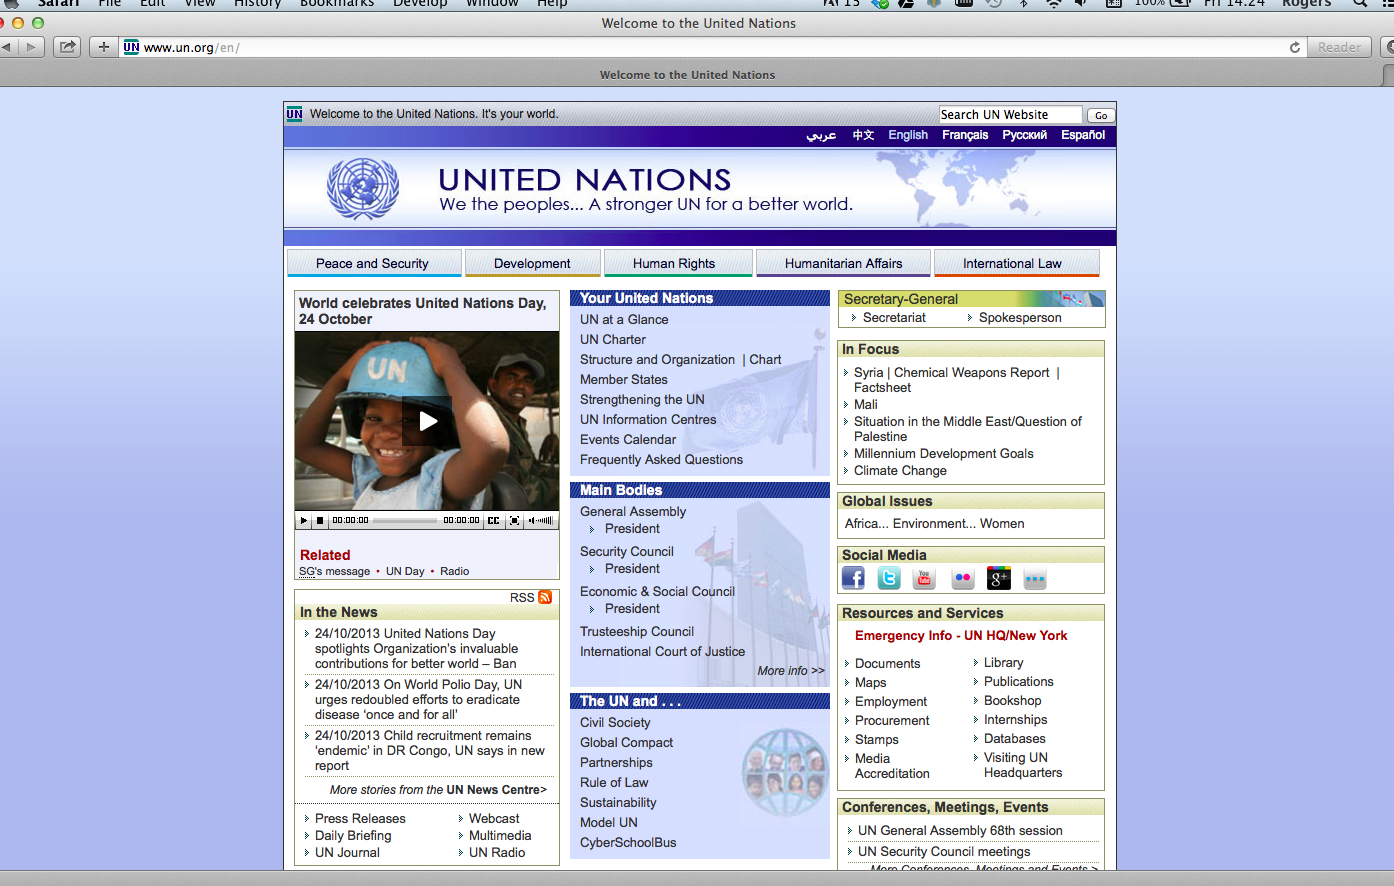 UN_homepage_2013-10-25_at_14.23.39.png